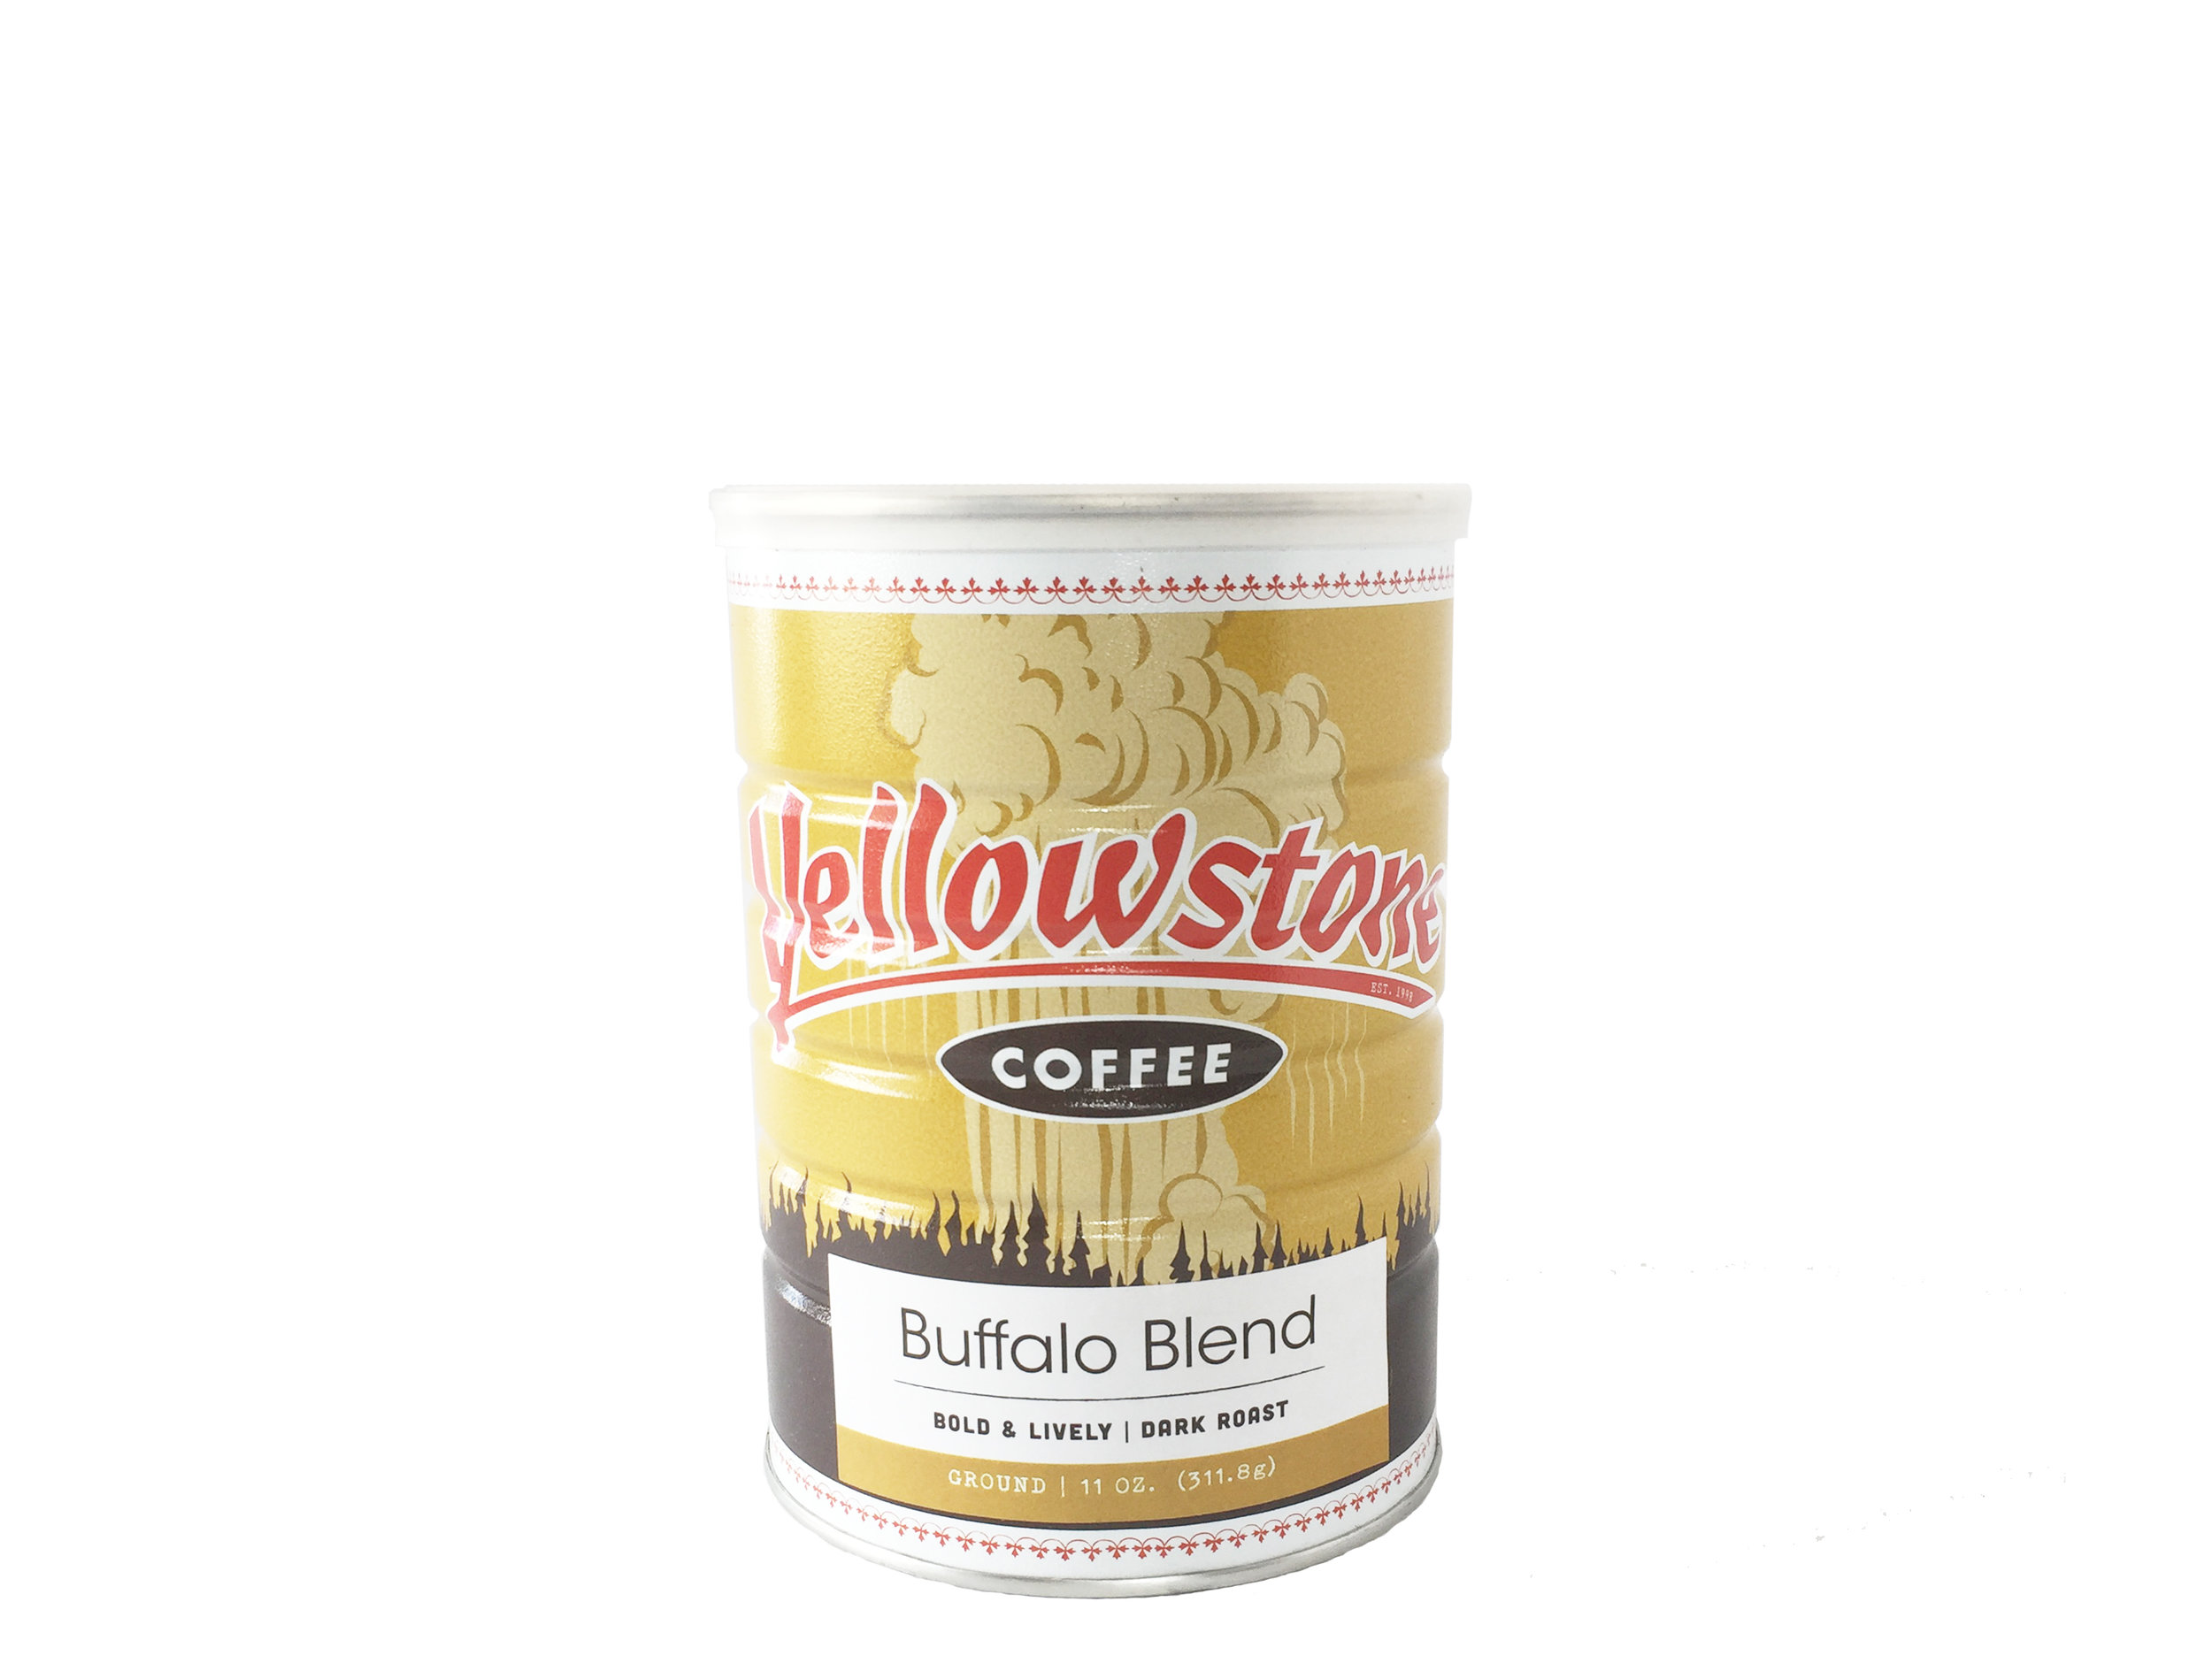 YellowstoneCoffee.jpg